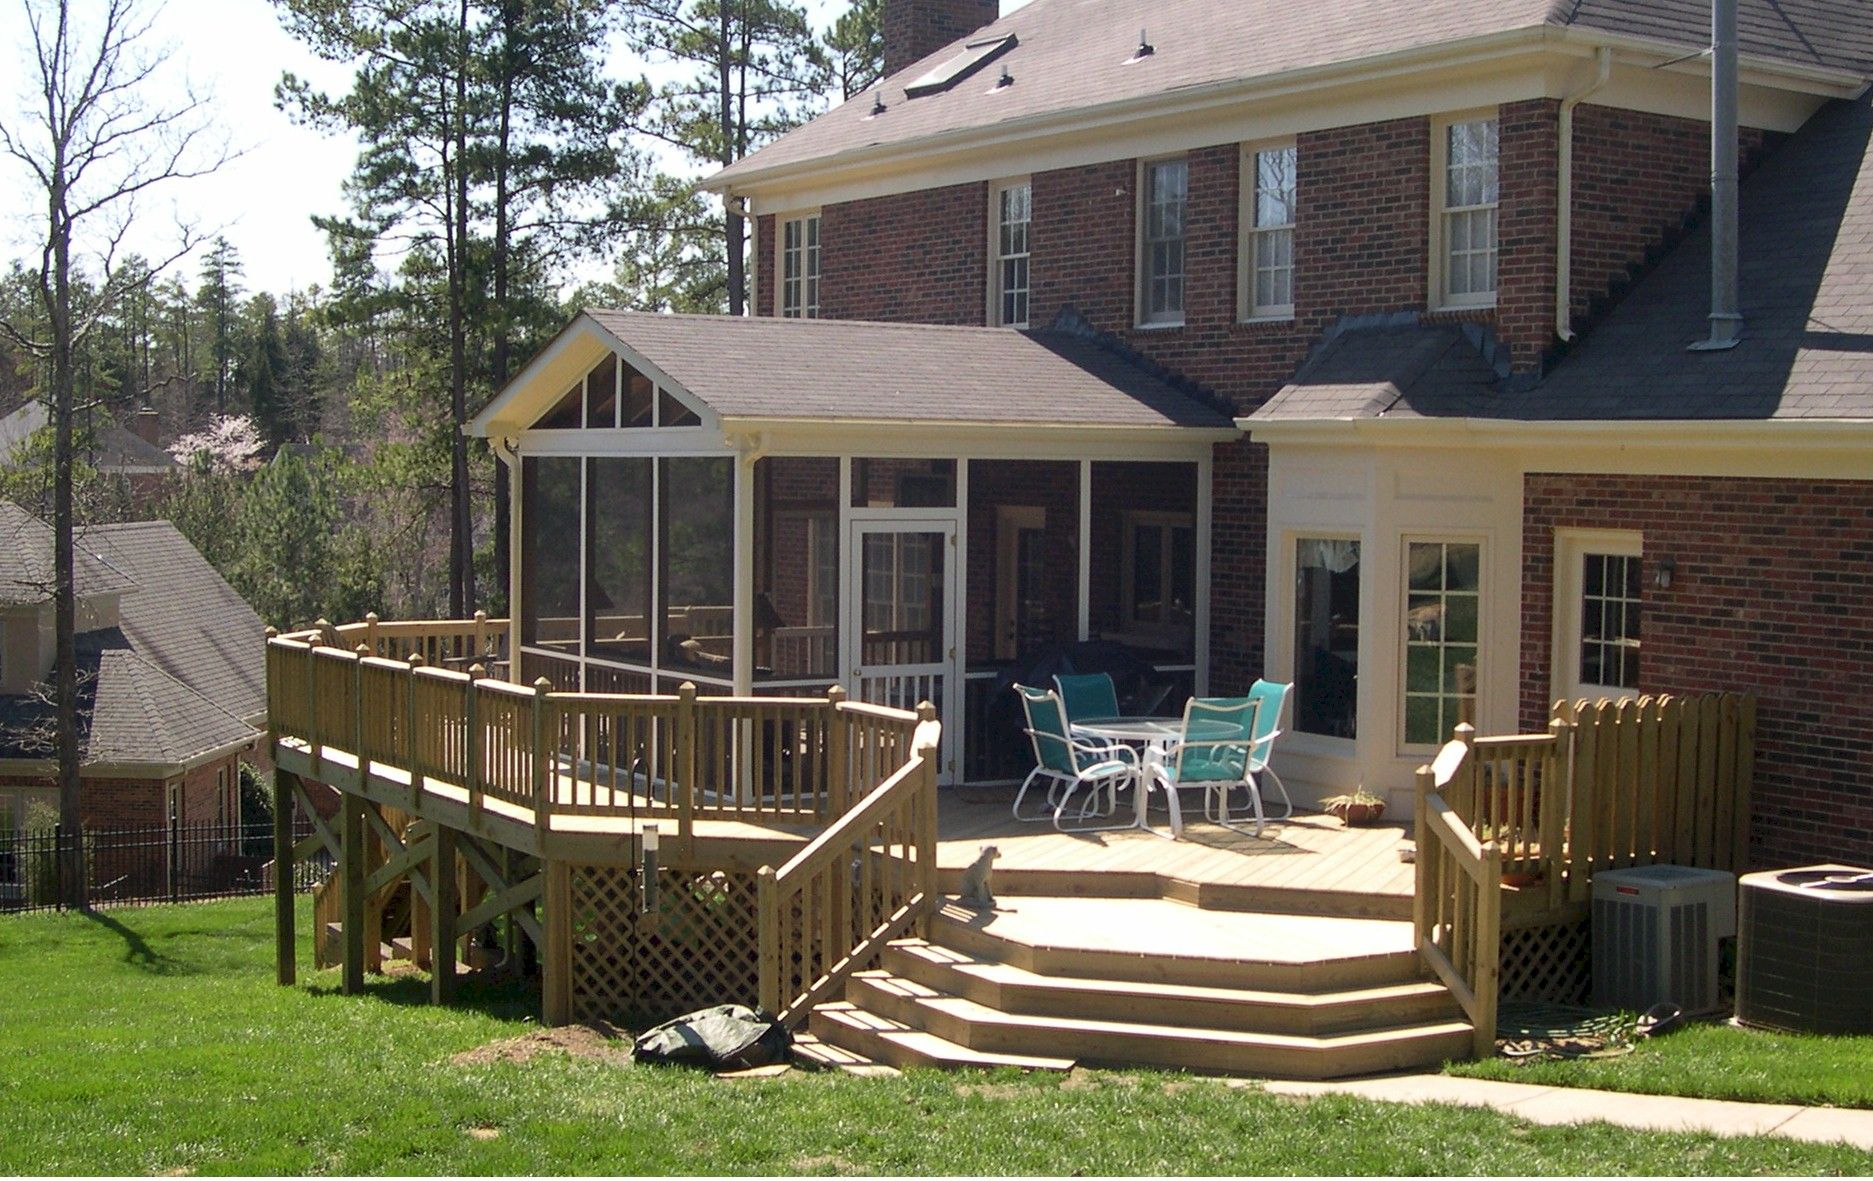 Charlotte Huntersville Screened Porch Sunroom Sunrooms